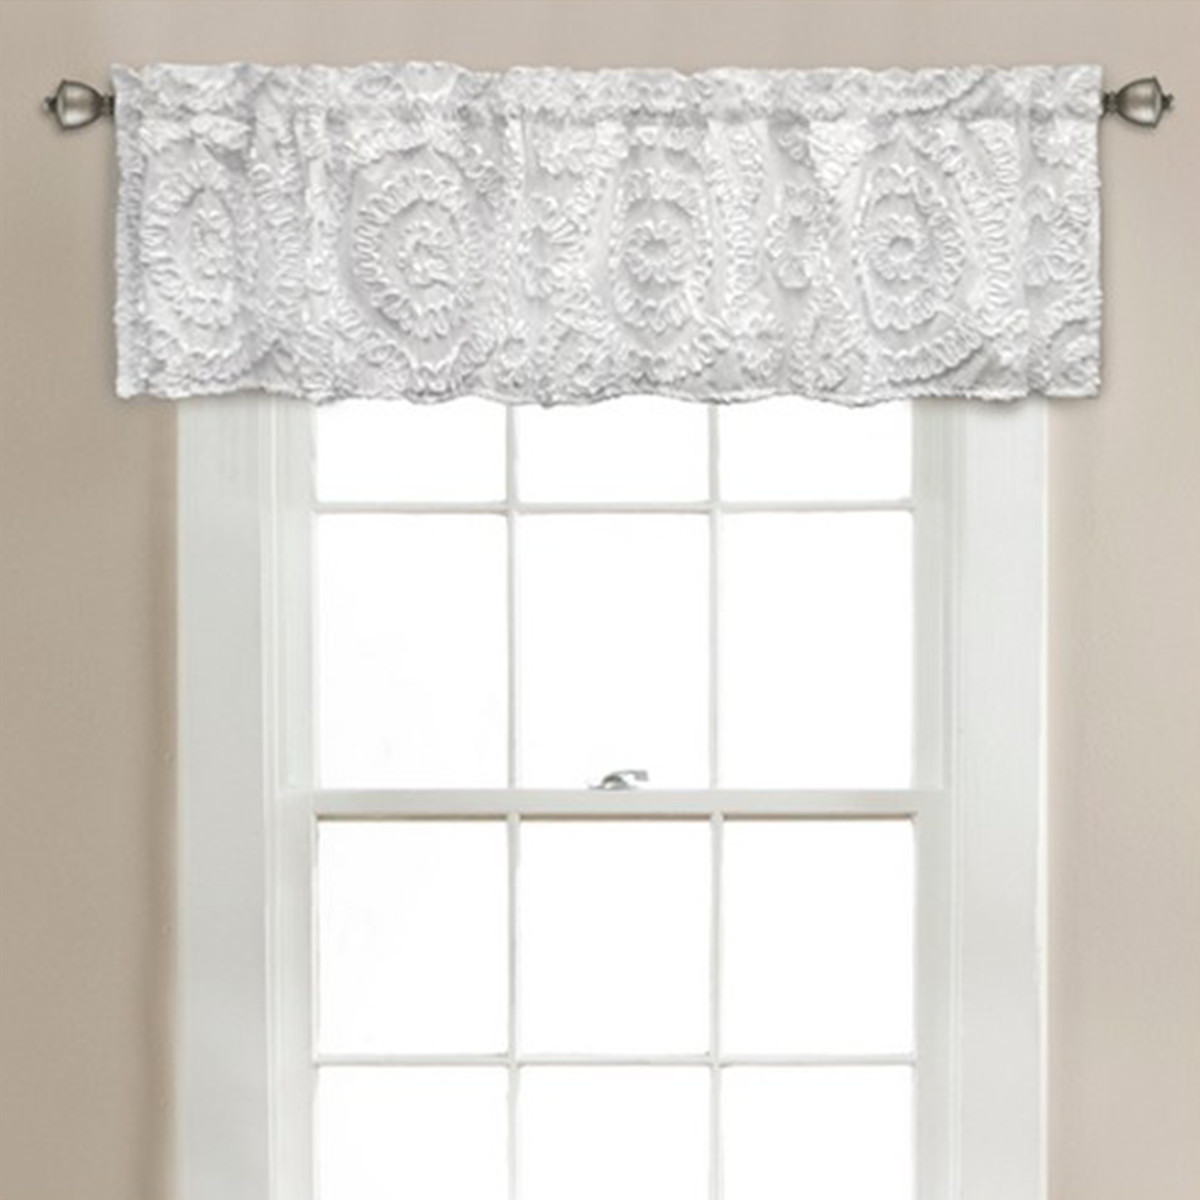 White window valence with textured, lace-like details photo